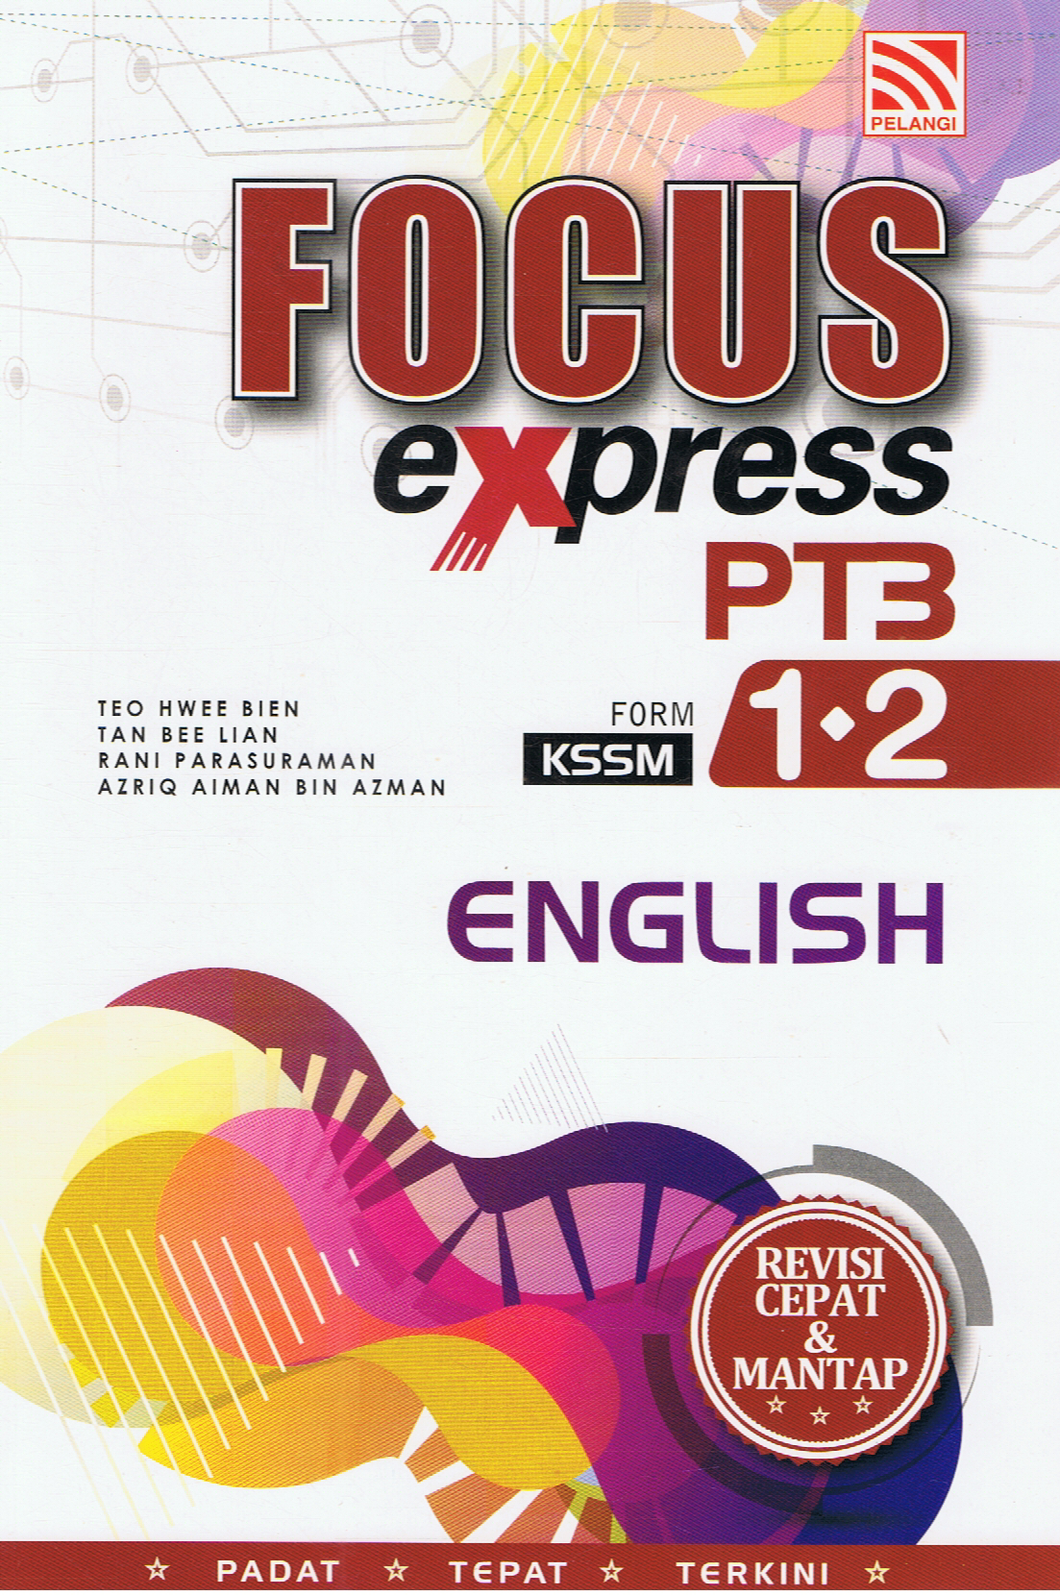 Focus Express PT3: English Form 1,2